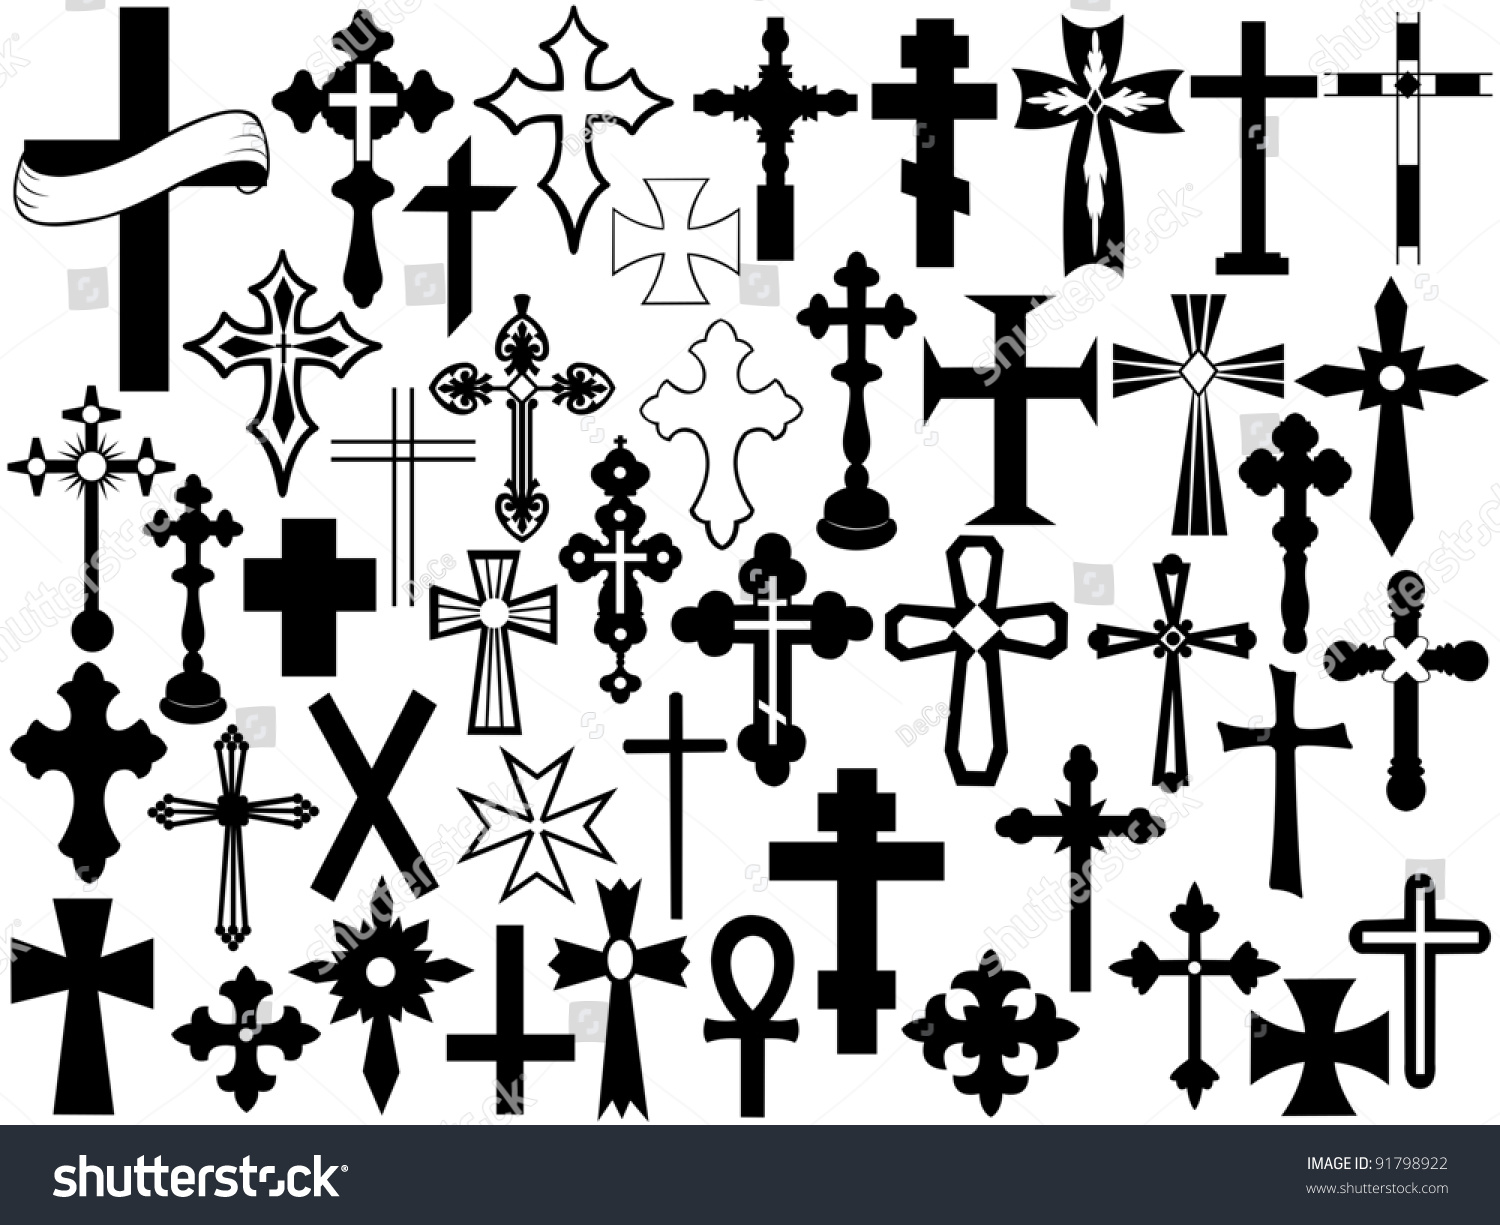 Cross Set Stock Vector Illustration 91798922 : Shutterstock